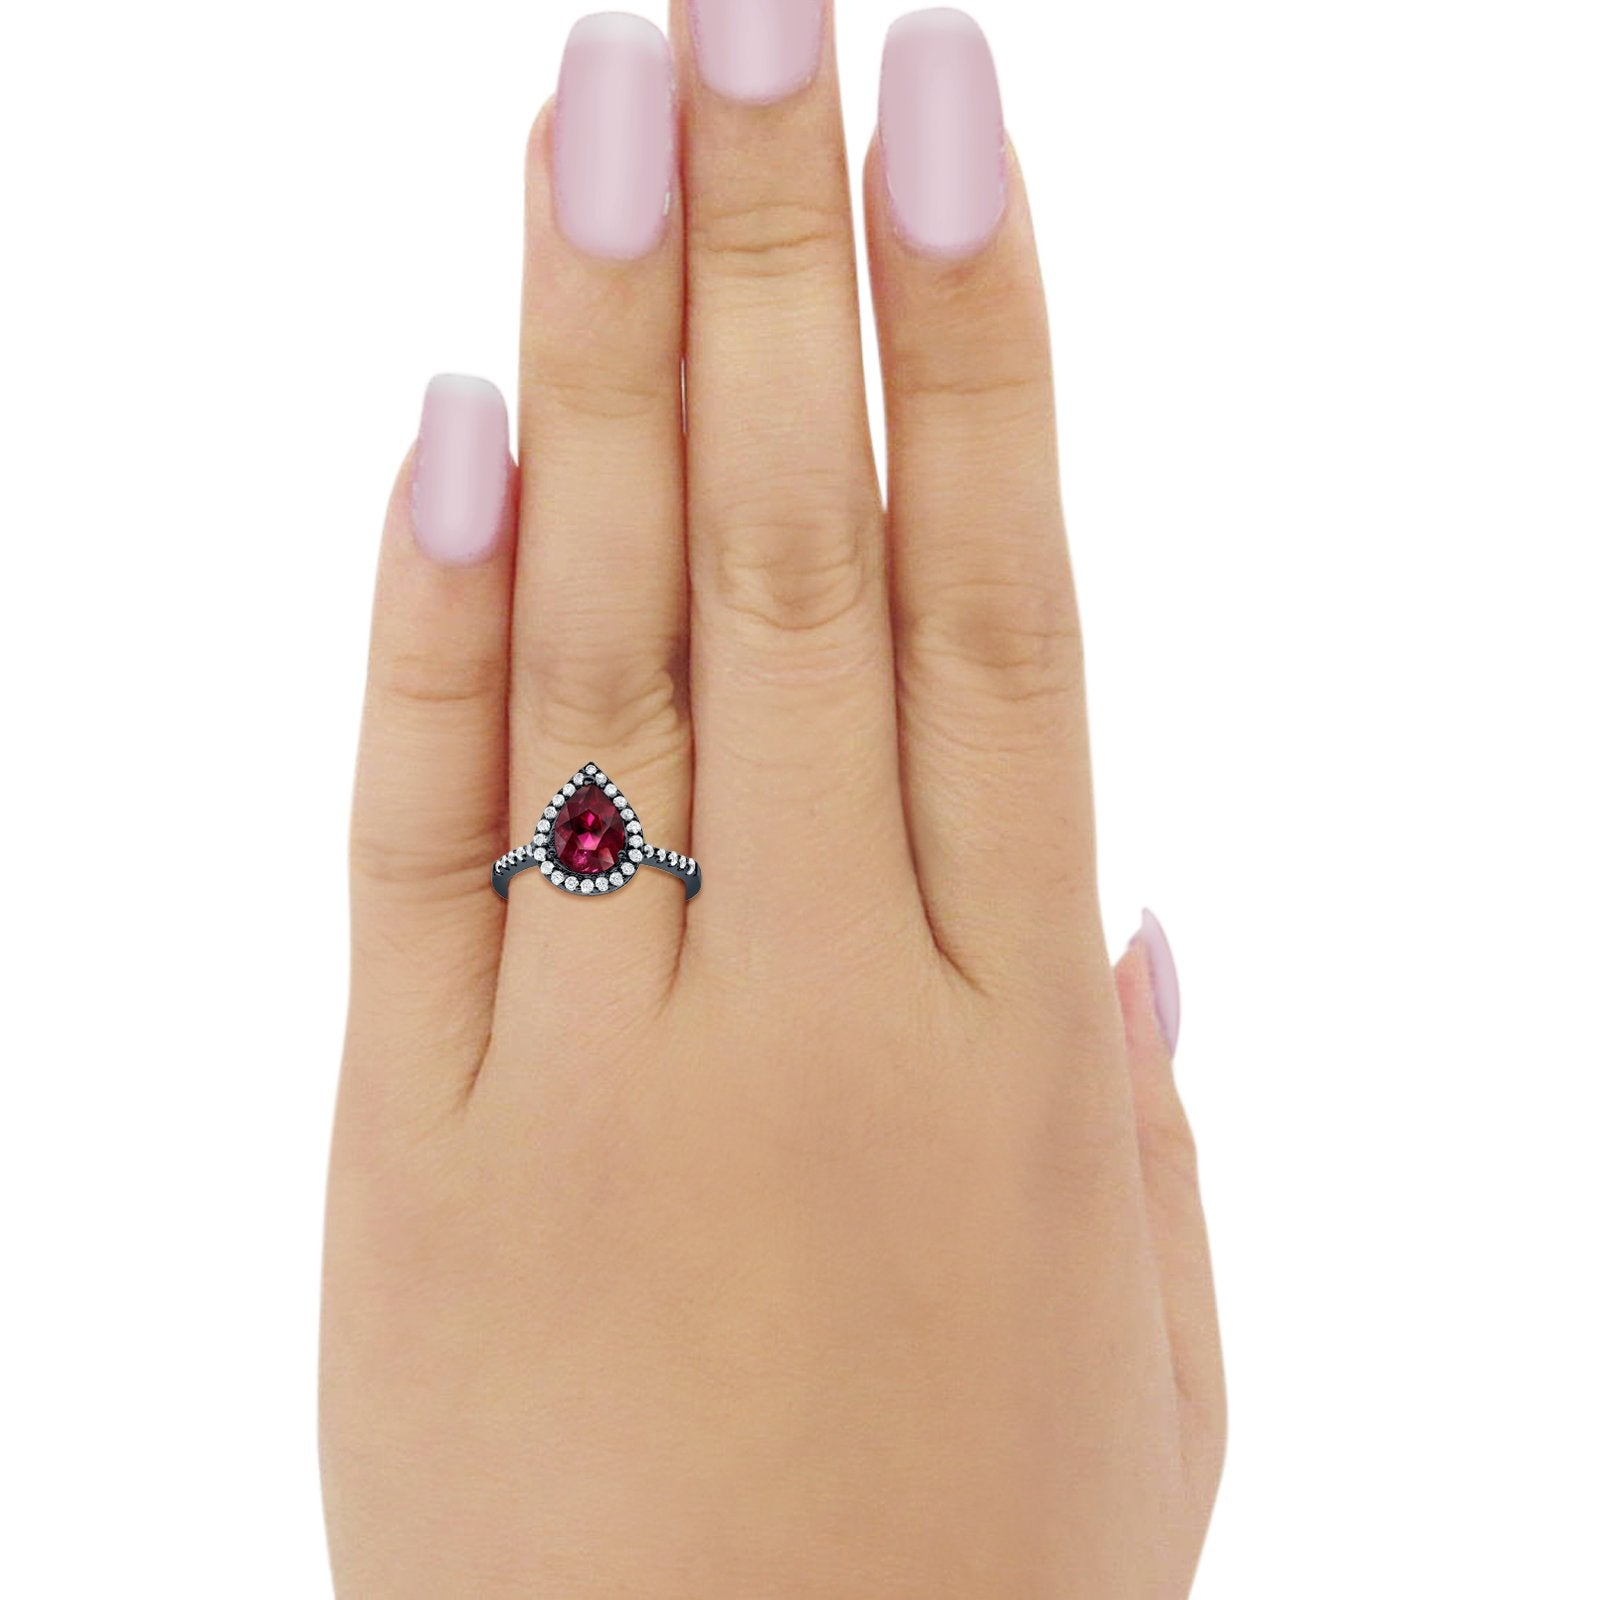 Halo Teardrop Ring Pear Black Tone, Simulated Ruby CZ 925 Sterling Silver